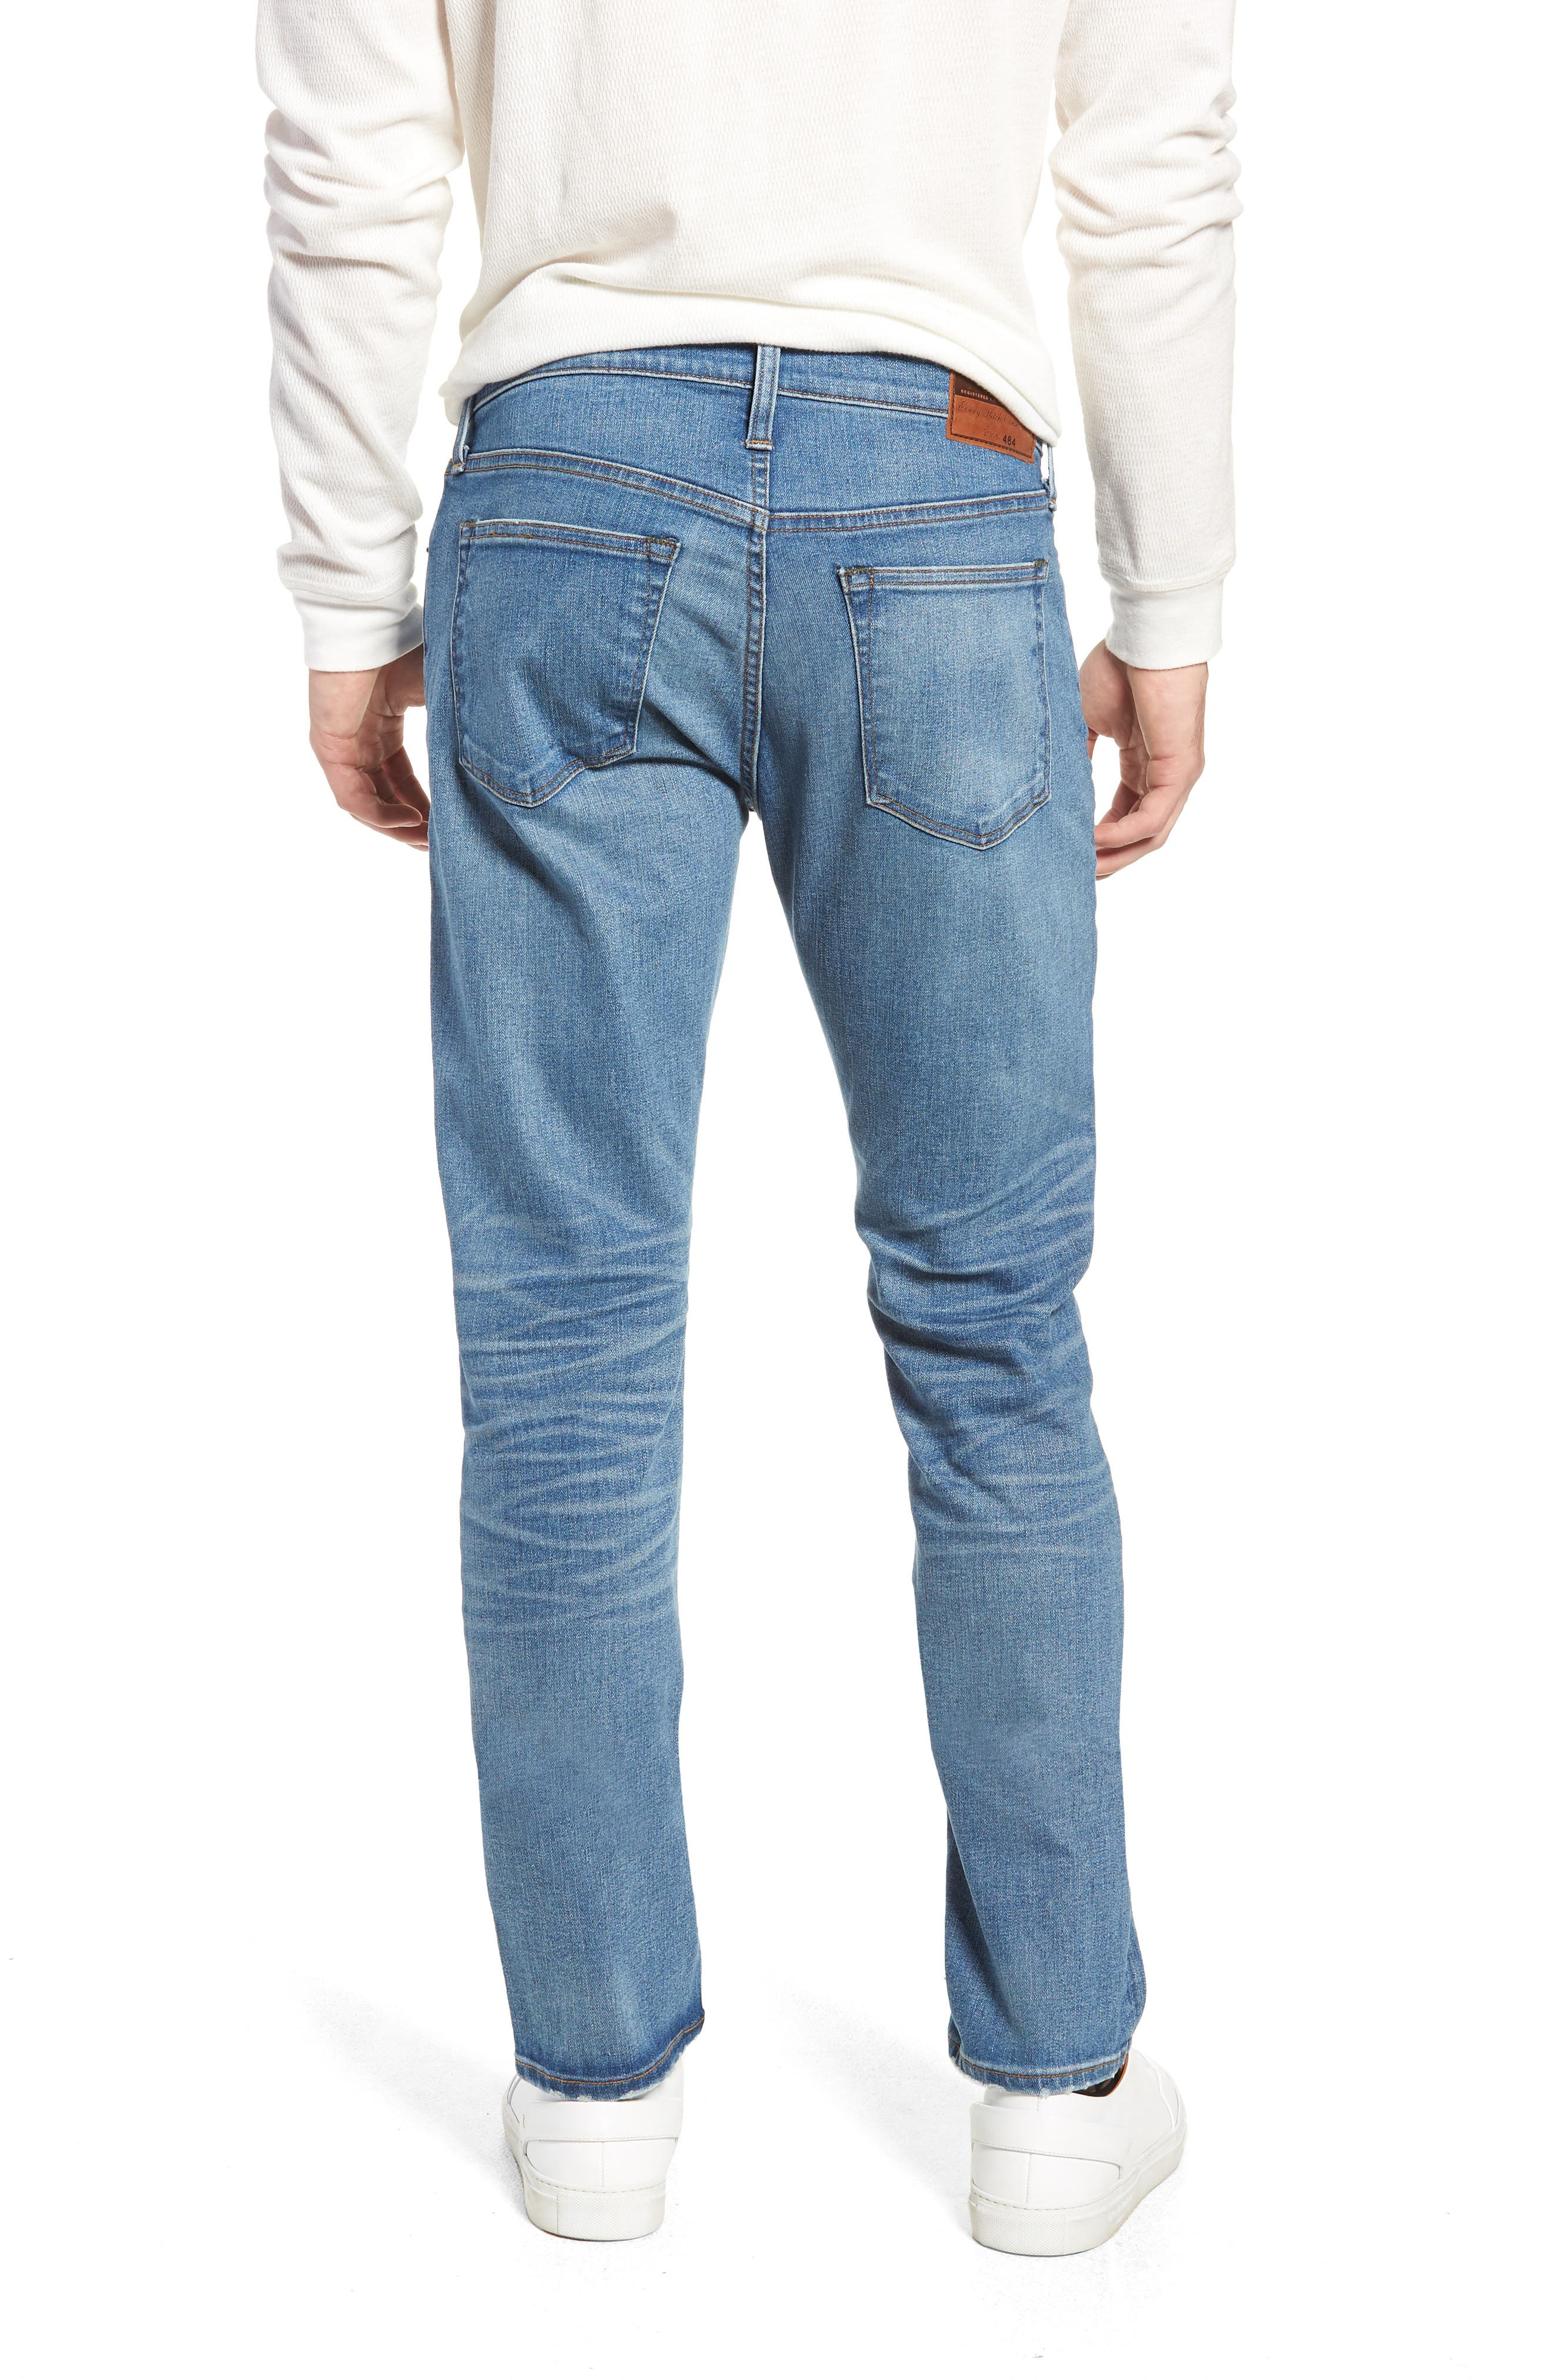 484 Slim Fit Distressed Stretch Jeans,                             Alternate thumbnail 2, color,                             Stockton Wash